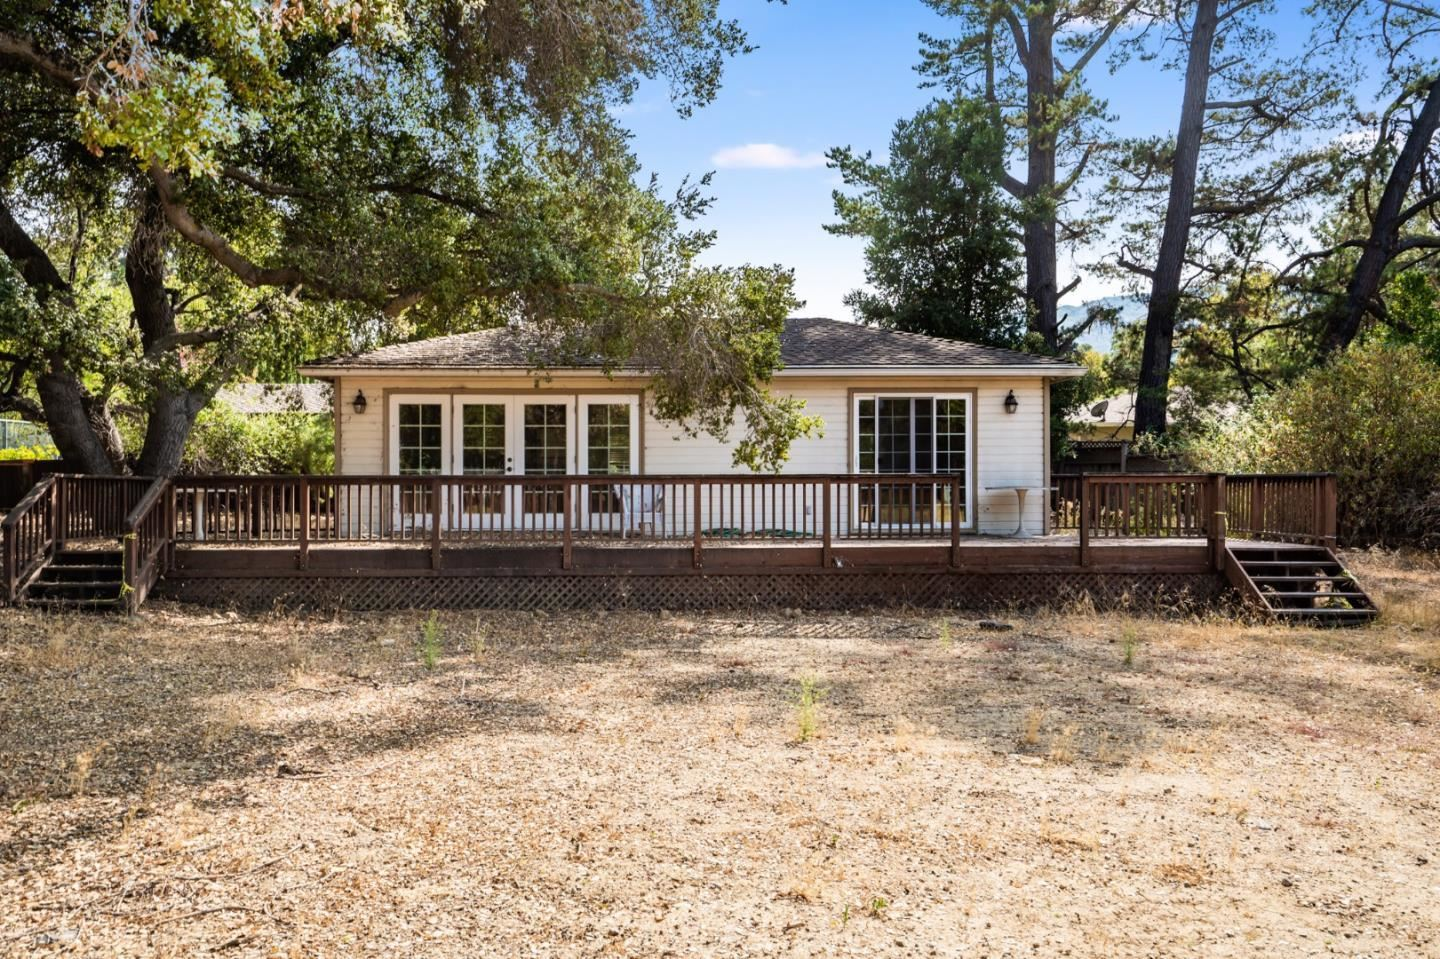 Photo for 18510 Bicknell RD, MONTE SERENO, CA 95030 (MLS # ML81812555)